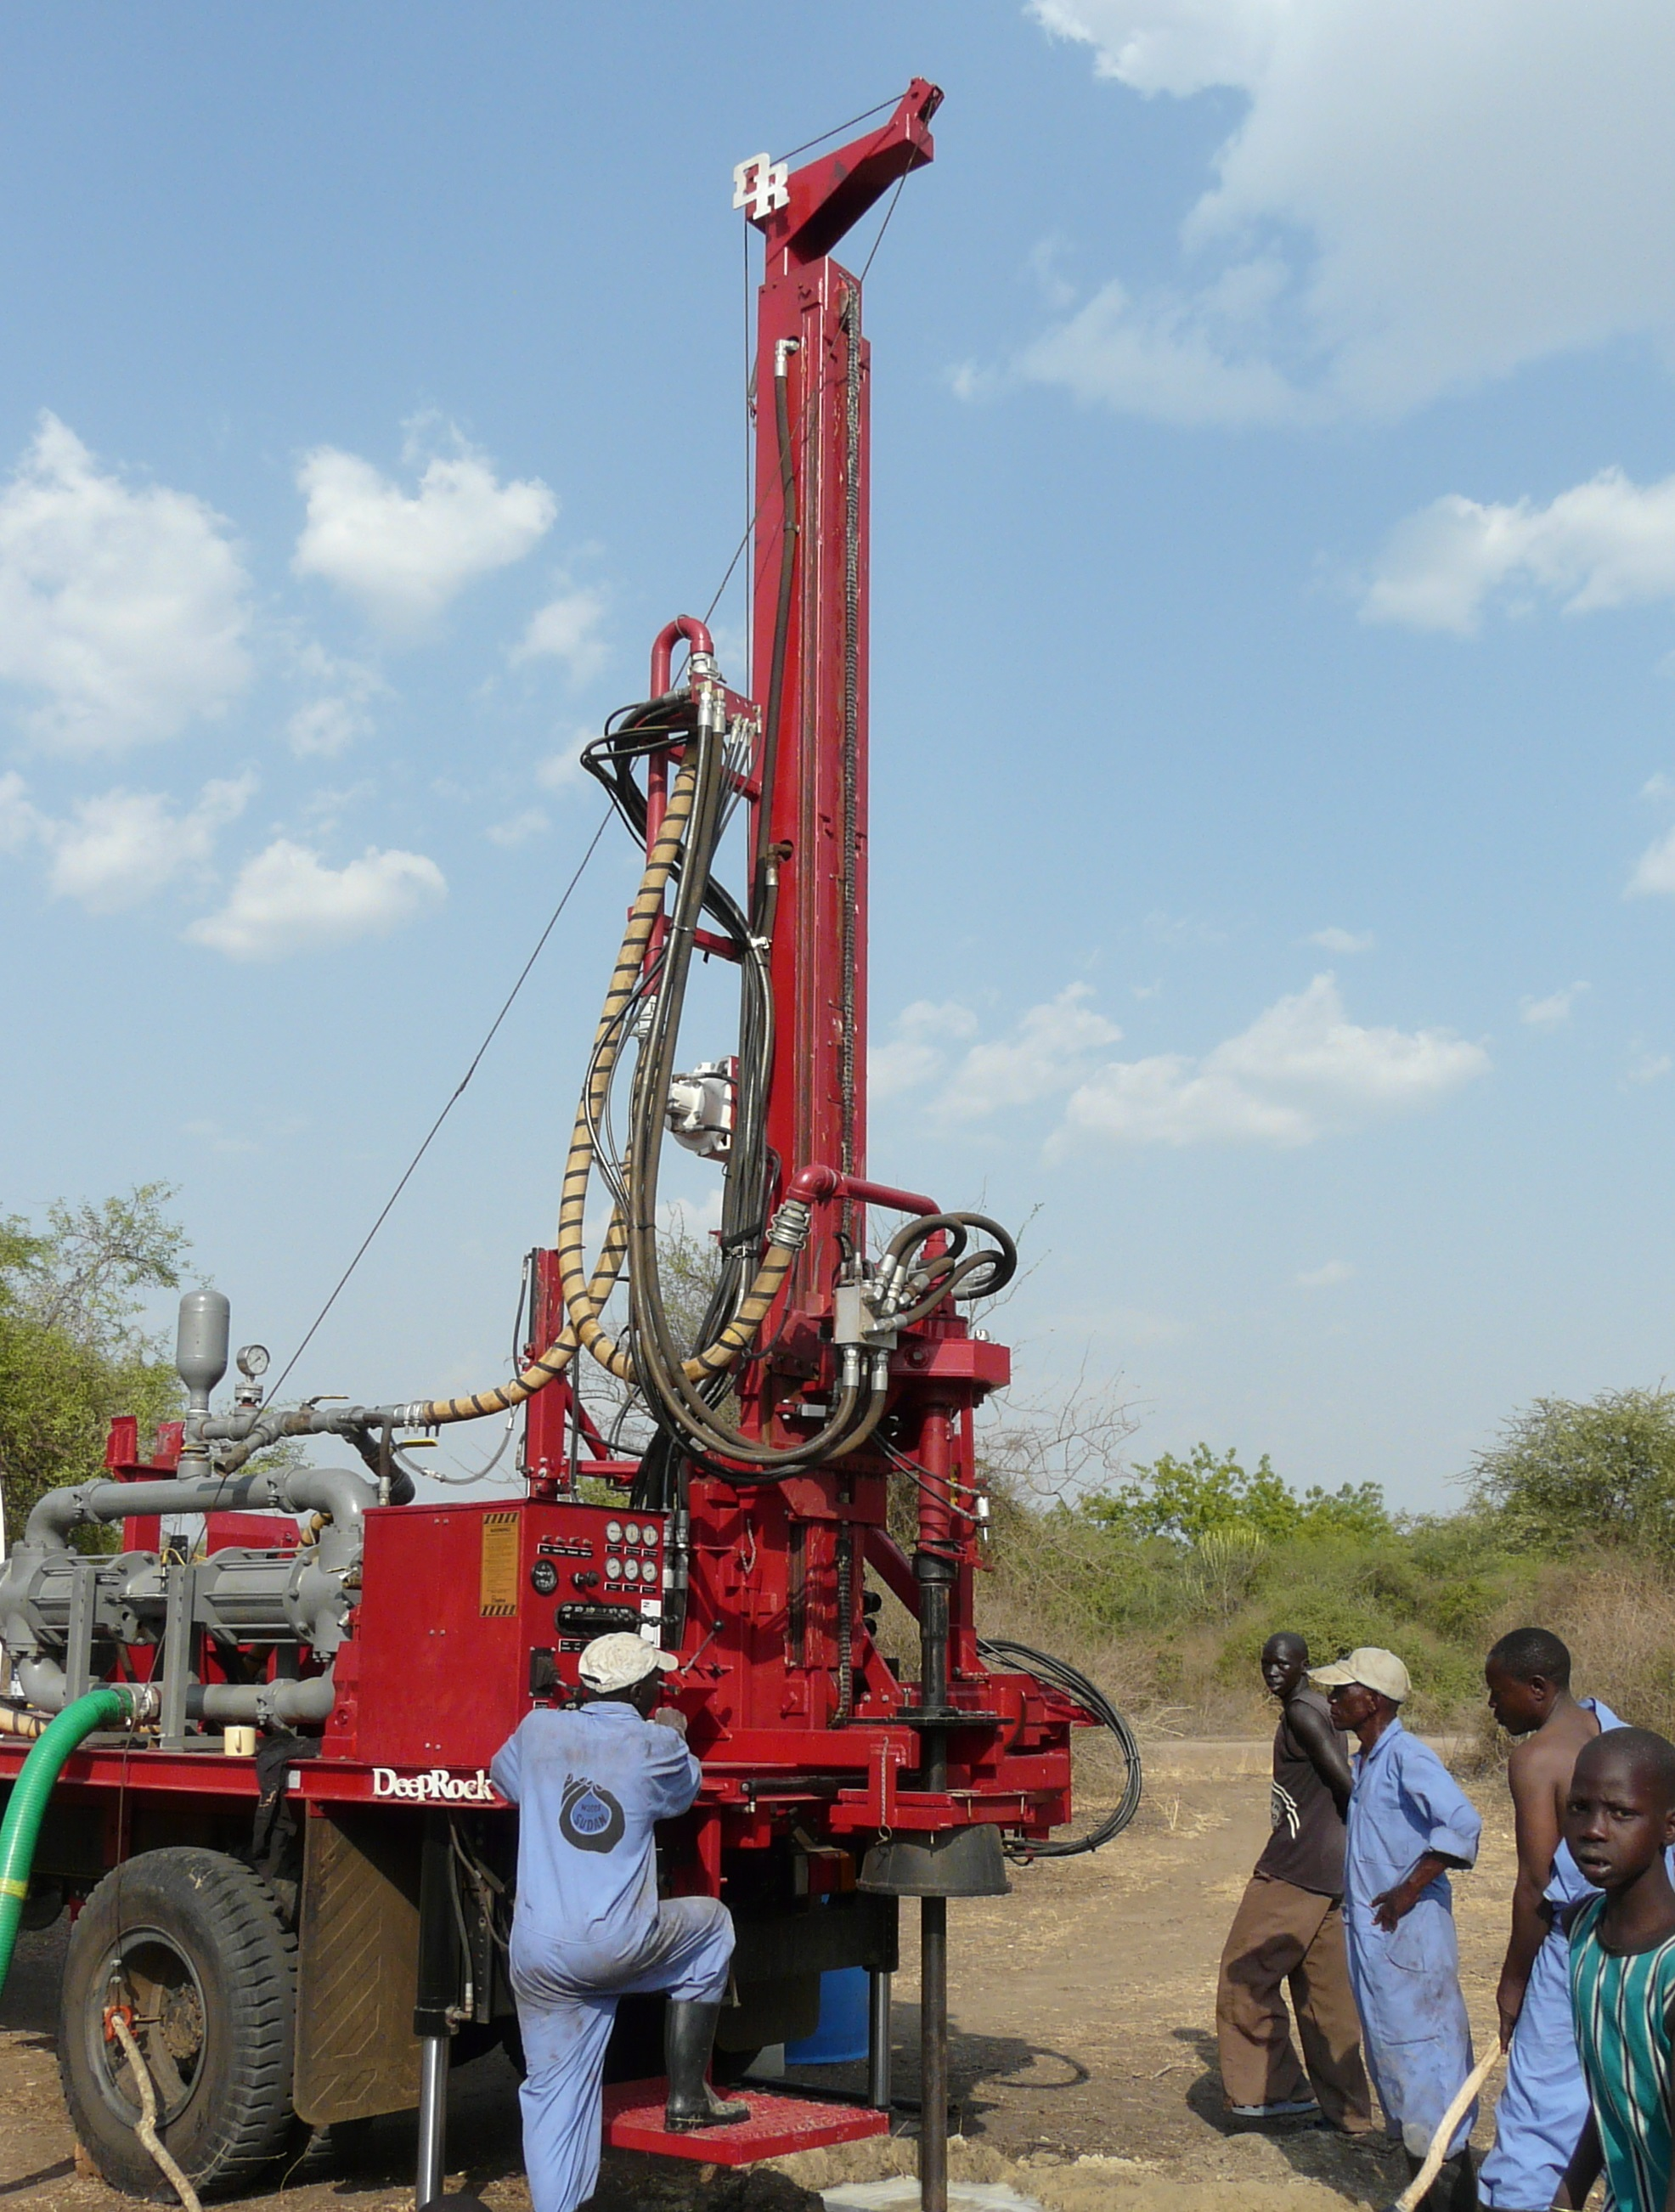 Iron Giraffe drilling rig